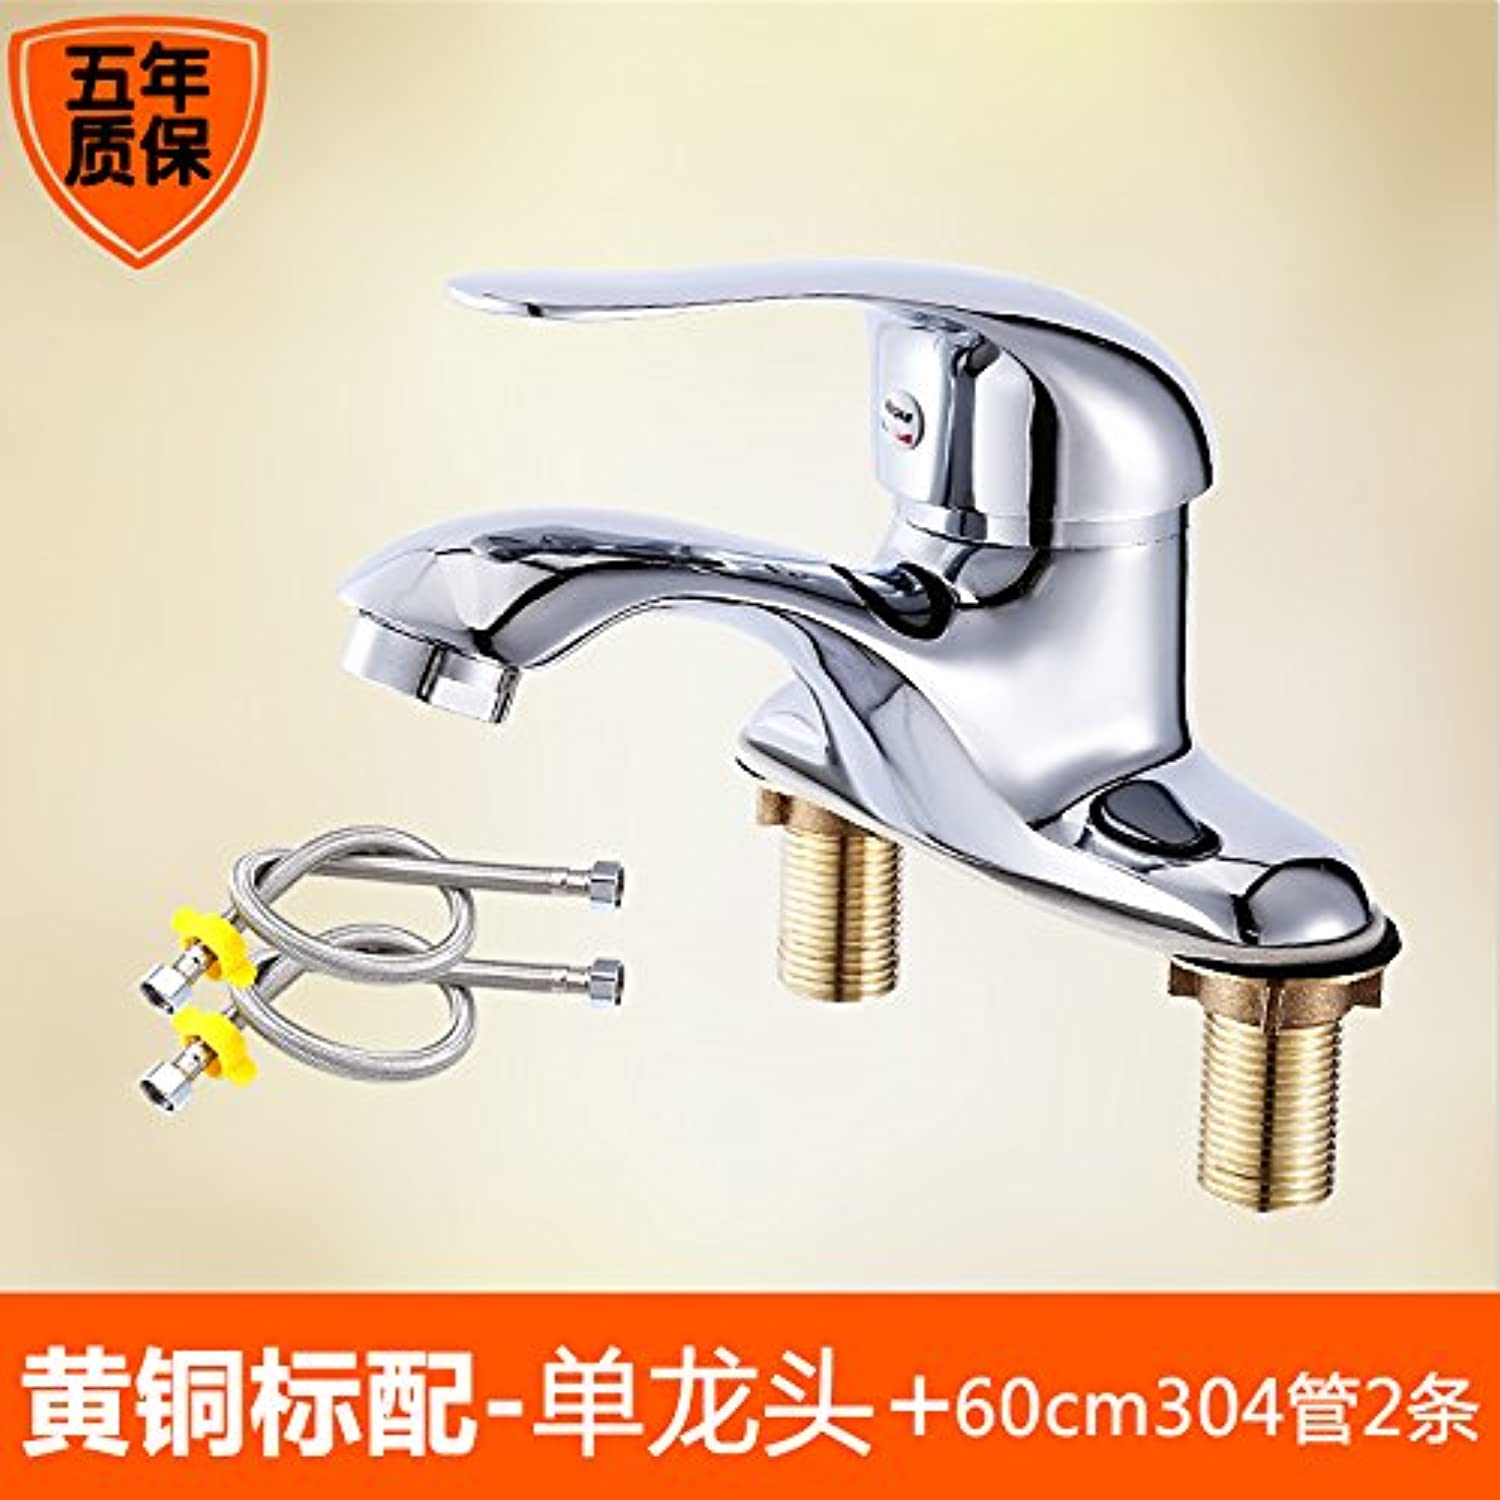 Gyps Faucet Single-Lever Washbasin Mixer Tap Brass Body Hot and Cold Basin Two Holes Basin Three Hole Basin Mixer Tap Bathroom Tap